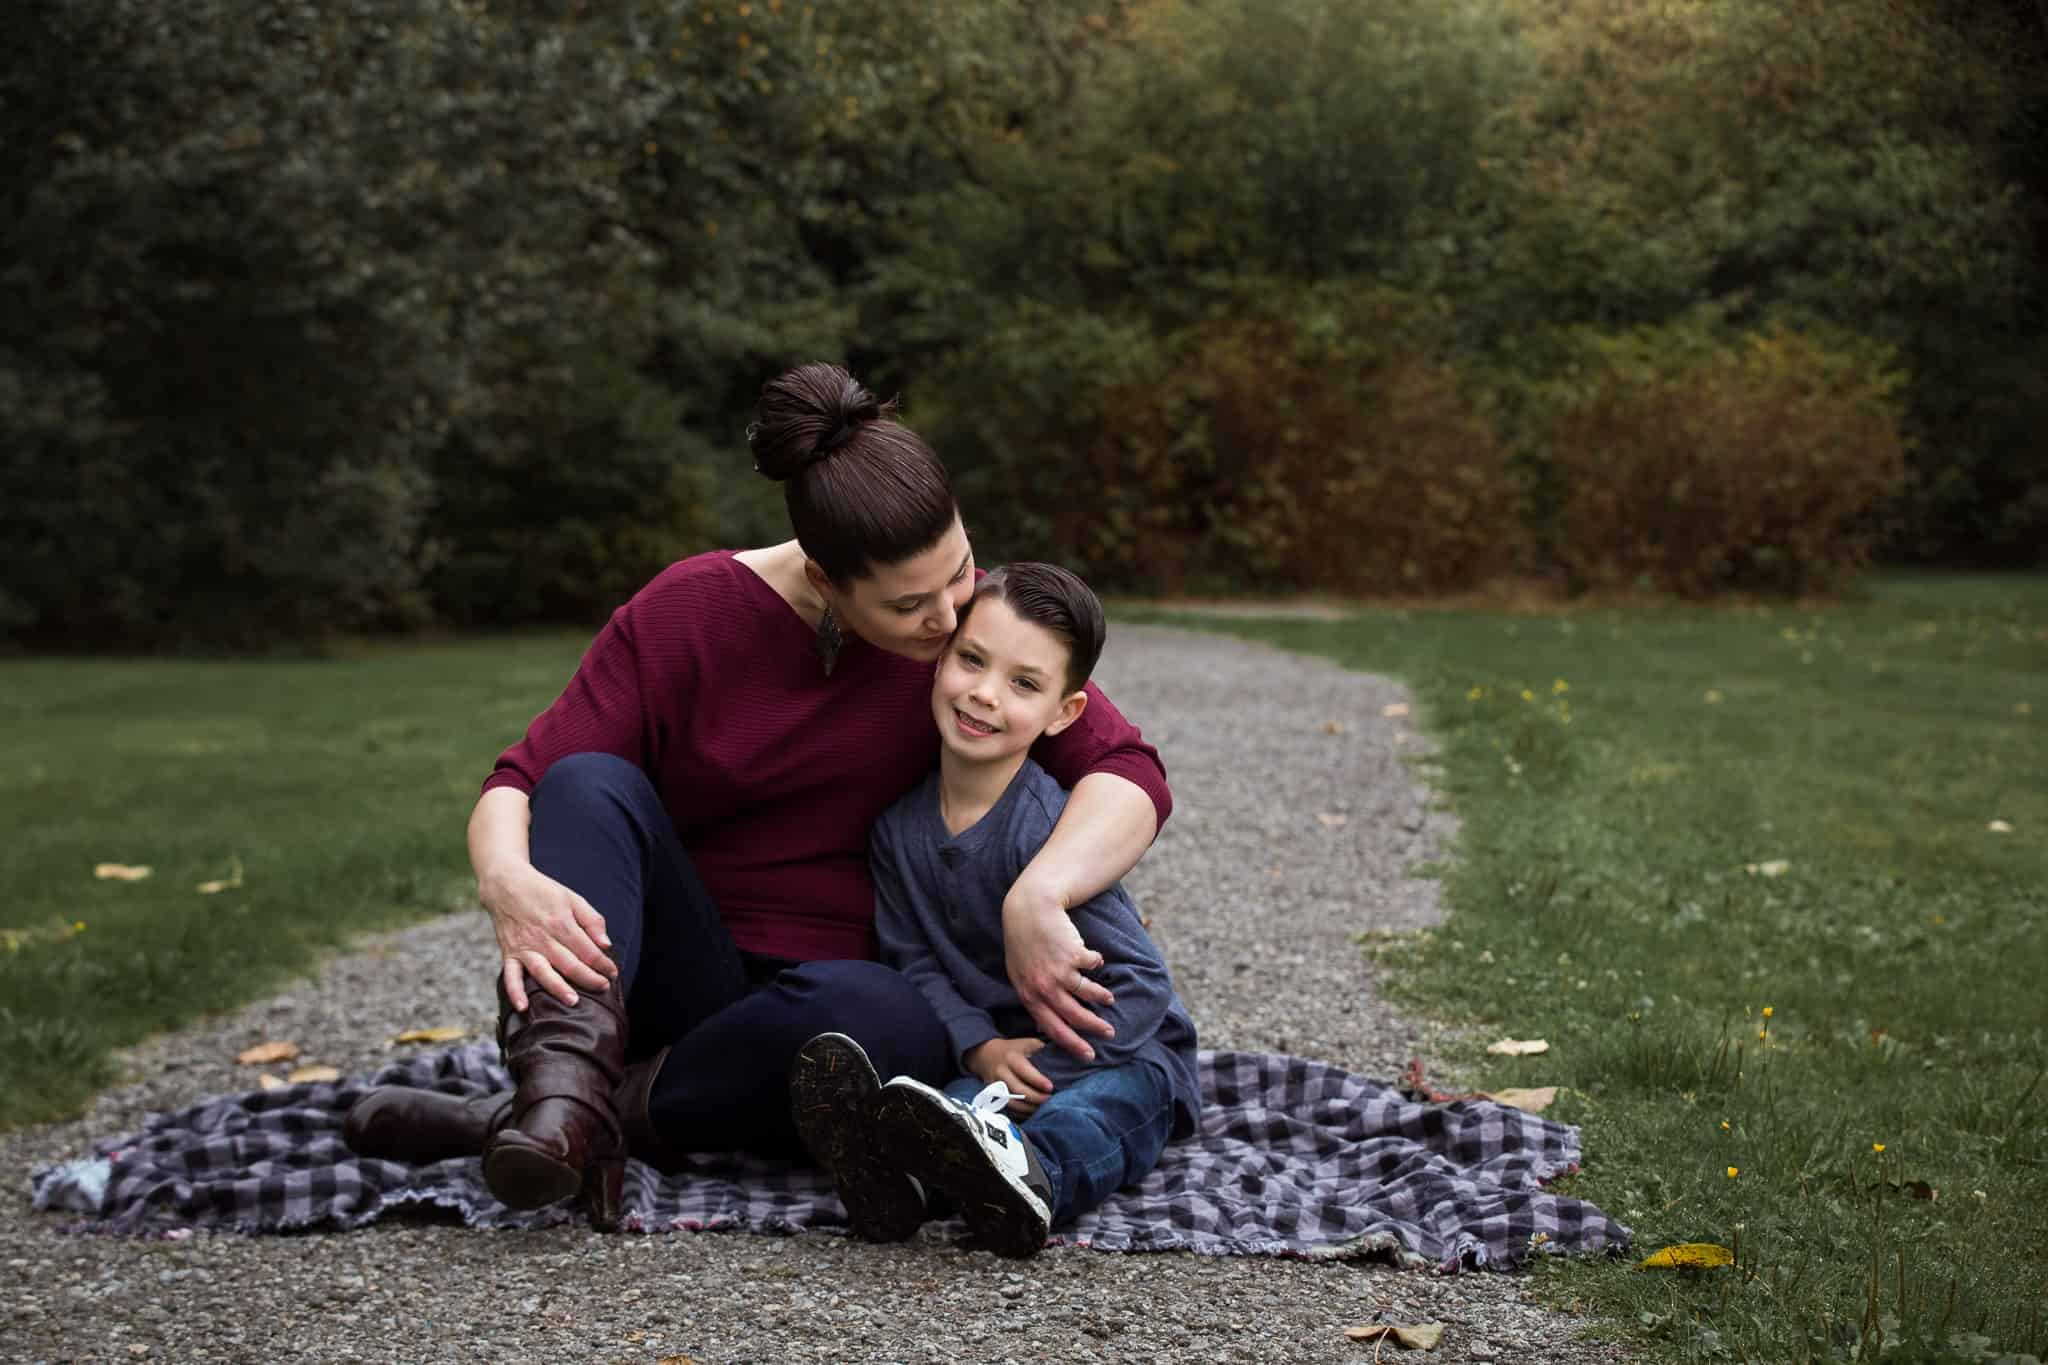 mom hugging her son close on a blanket